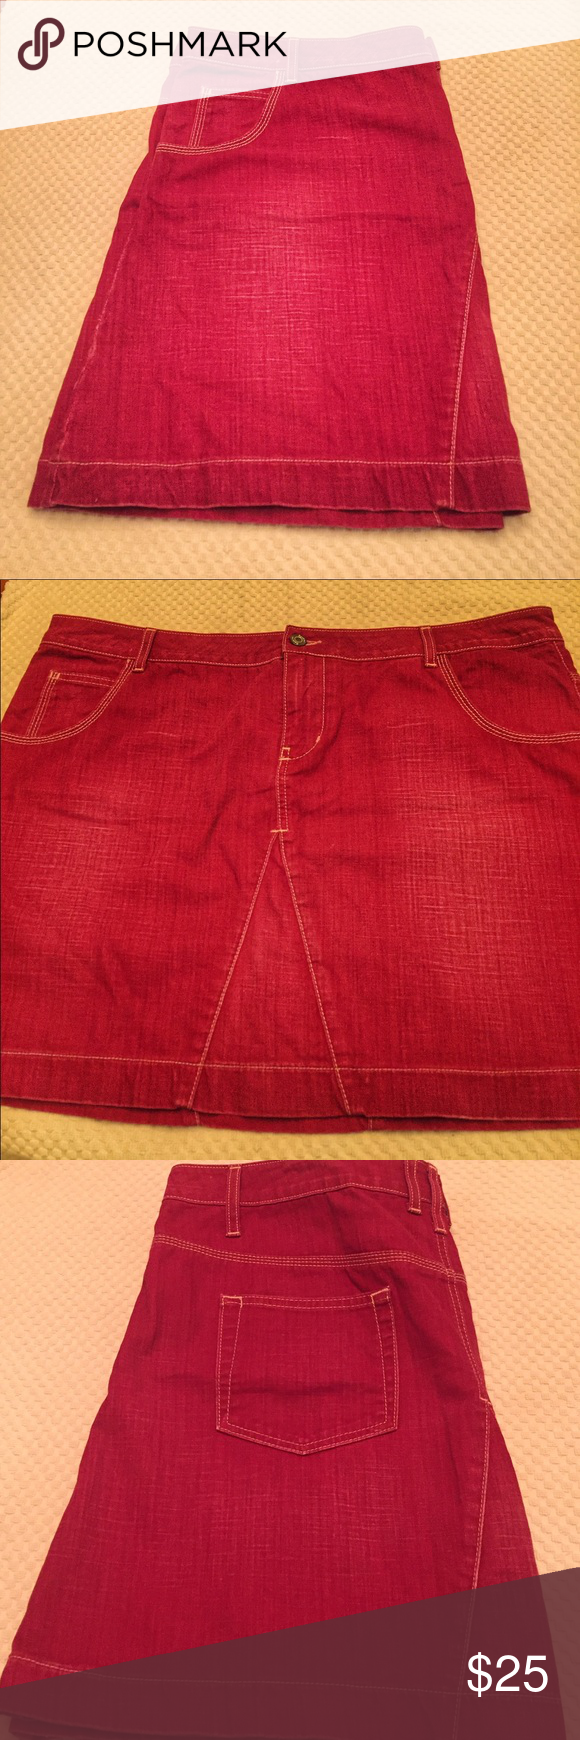 Boden Red Denim Skirt Fun Boden skirt! It's short -17.5 inches in length. Excellent condition! Euro size 20R (16R US). Boden Skirts Mini